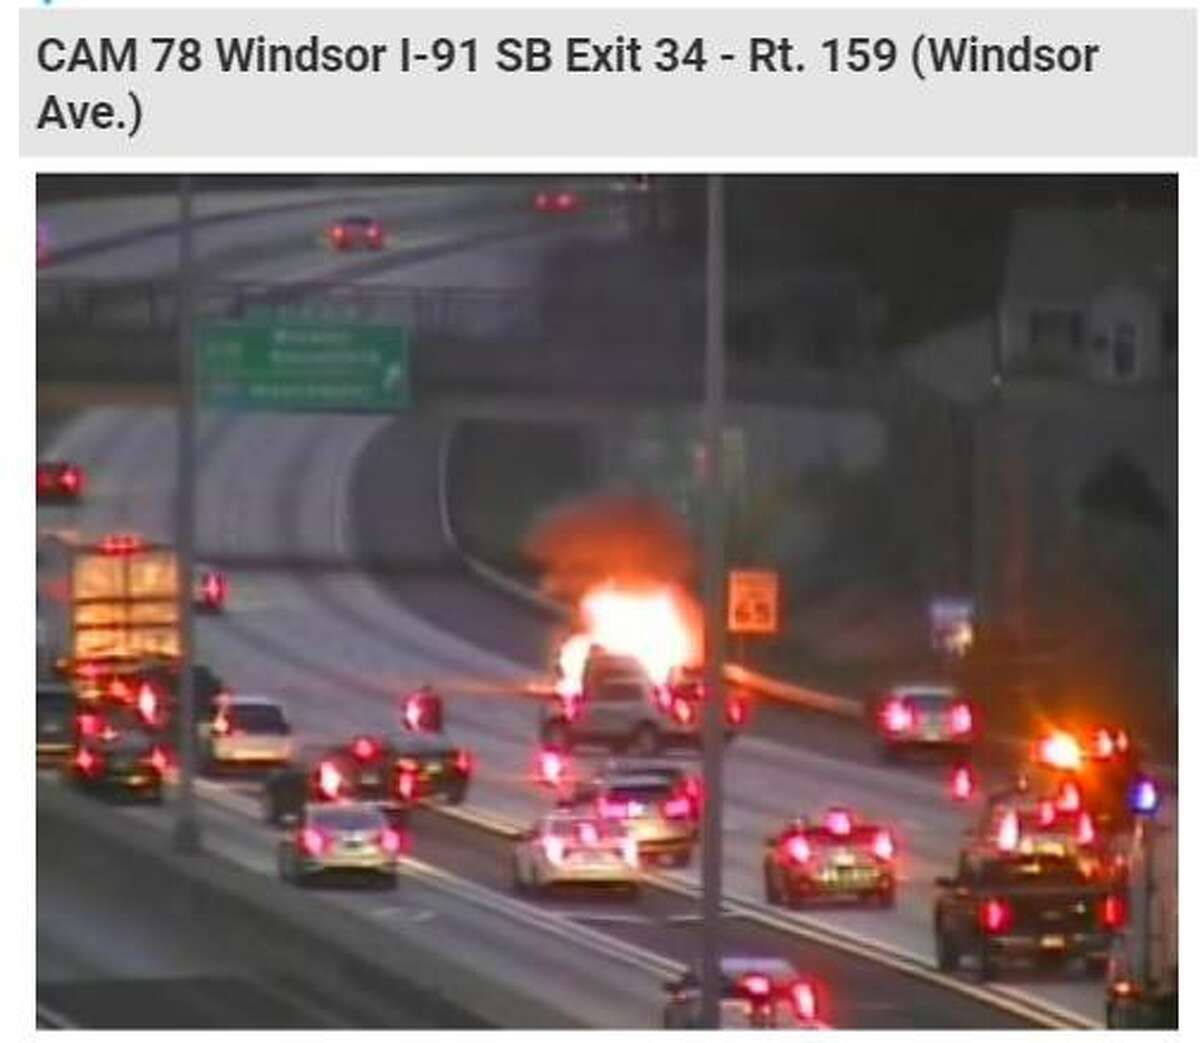 WINDSOR - Flames engulfed a vehicle on the northbound side of I-91 Saturday, April 17, 2021.